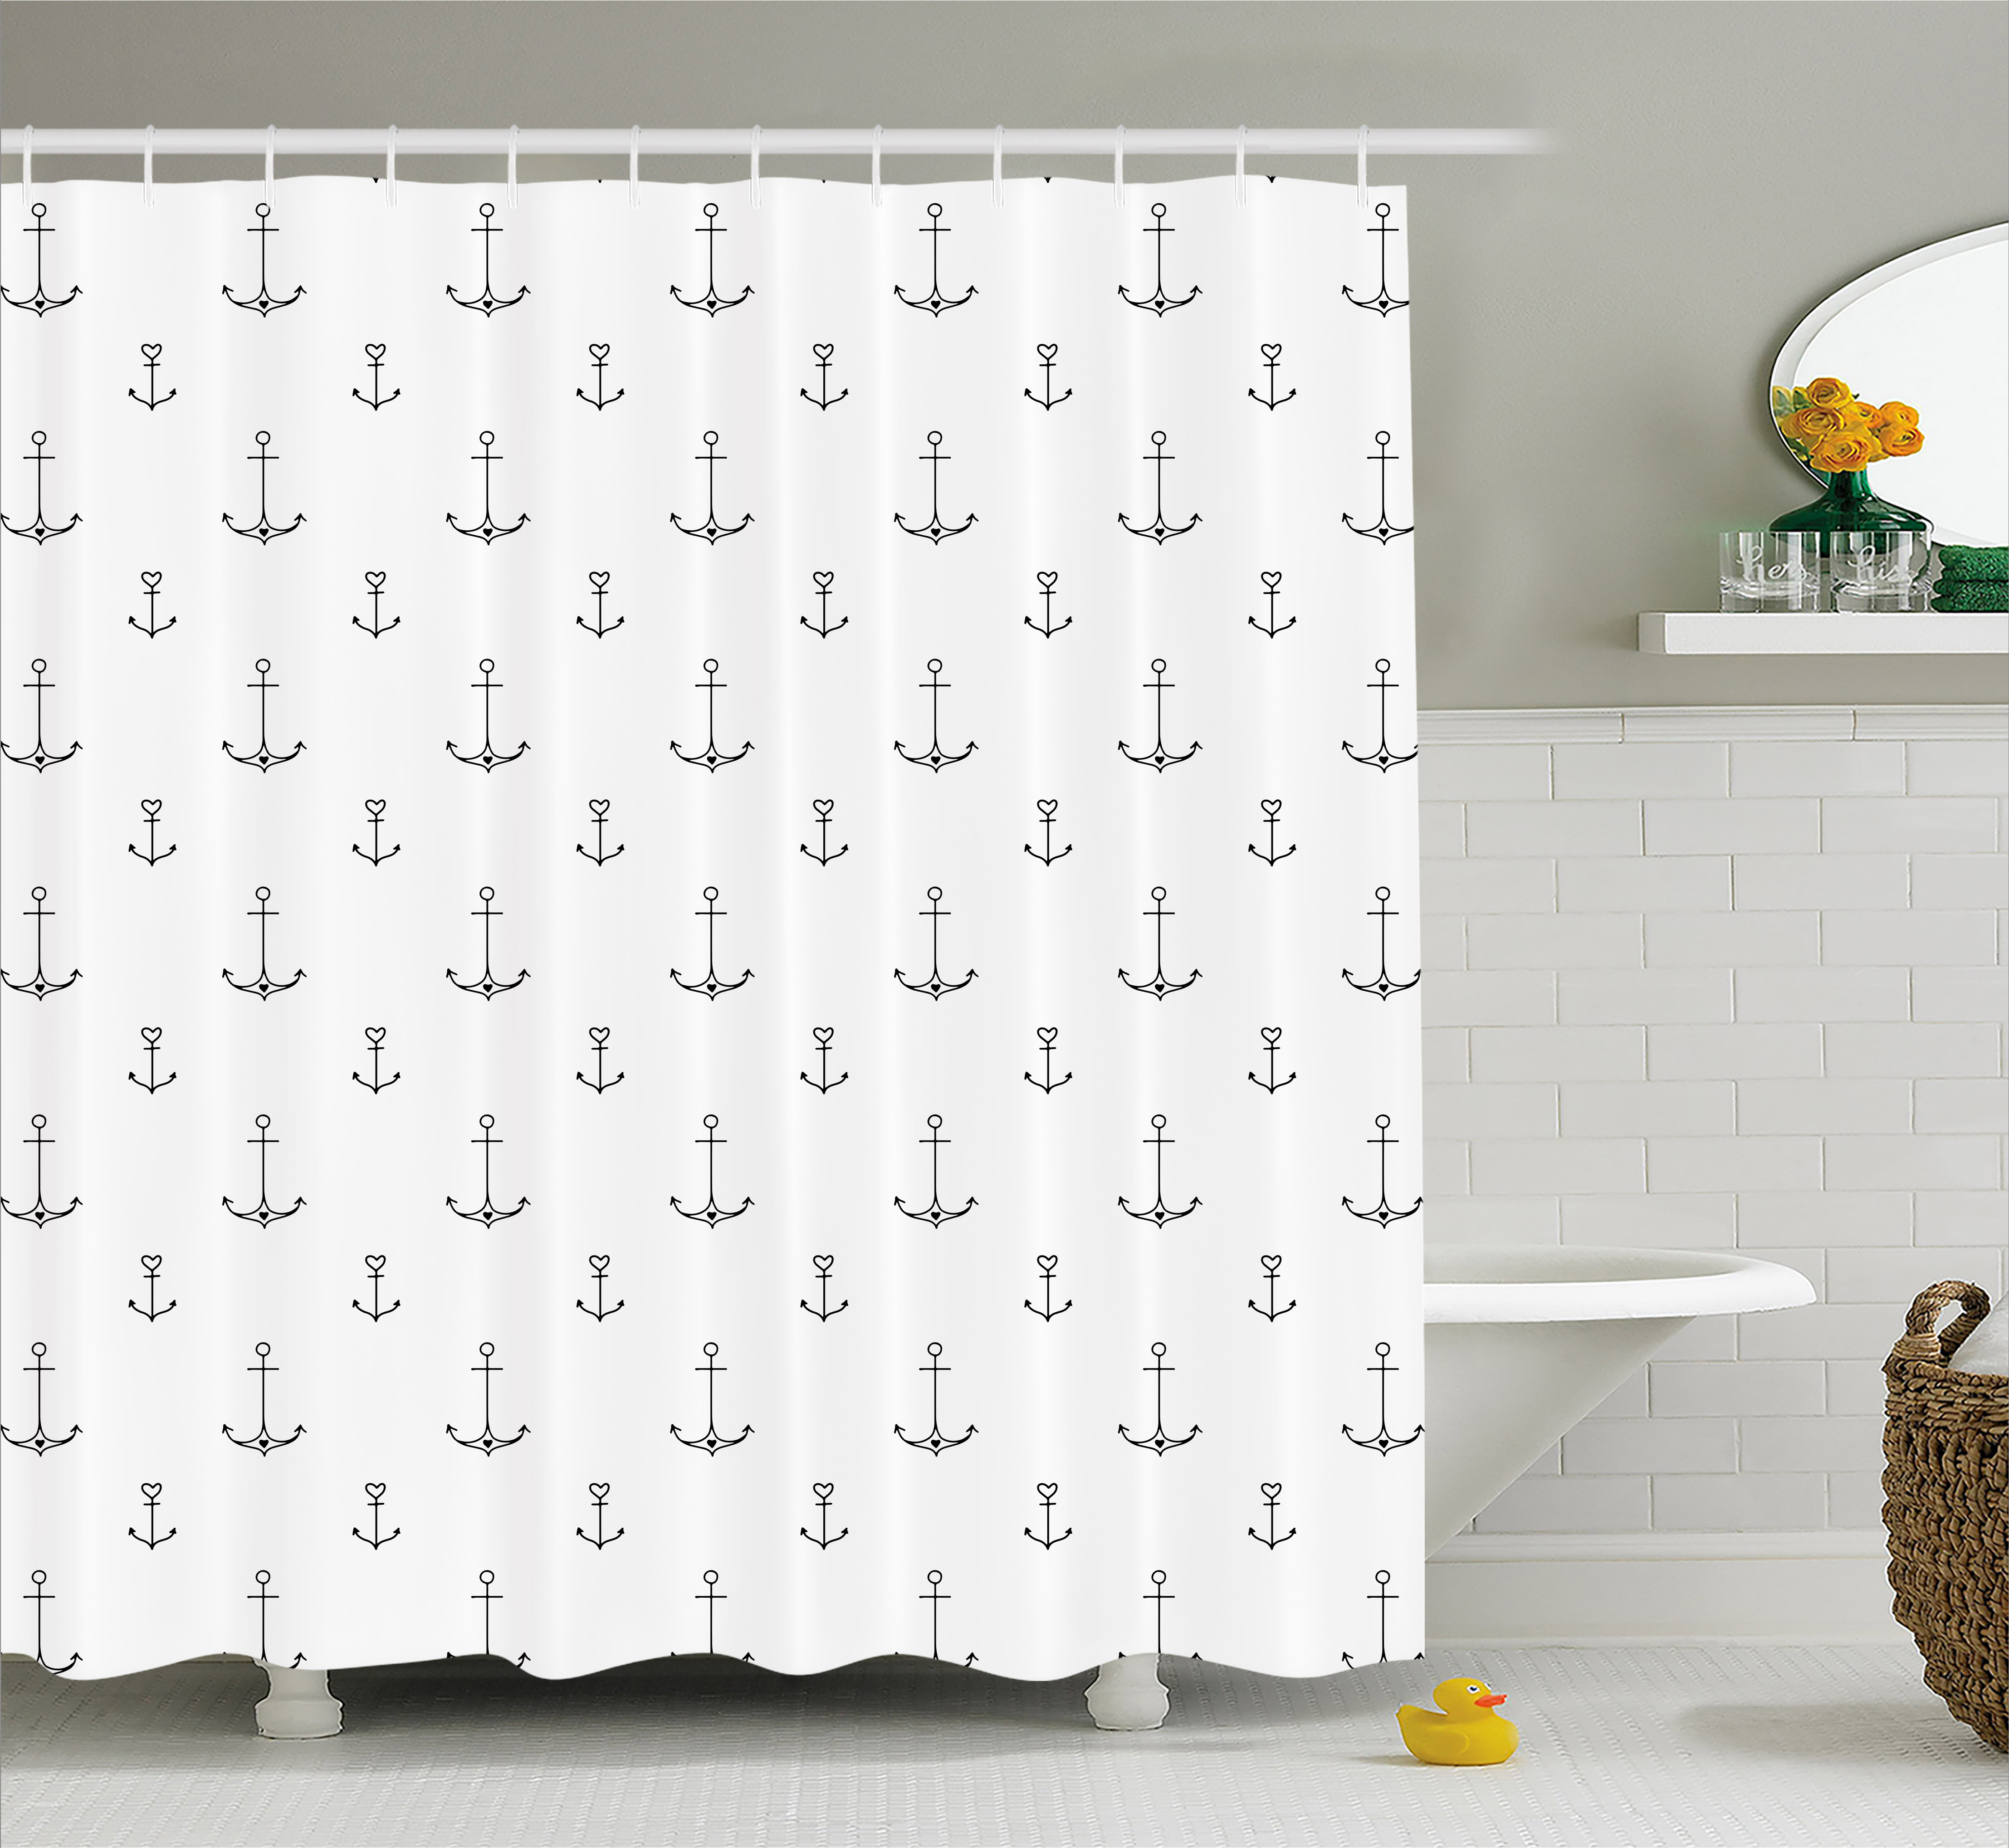 Anchor Shower Curtain, Old School Tattoo Style Hand Drawn Style Nautical Pattern Hipster Retro Art Design, Fabric Bathroom Set with Hooks, Black White, by Ambesonne